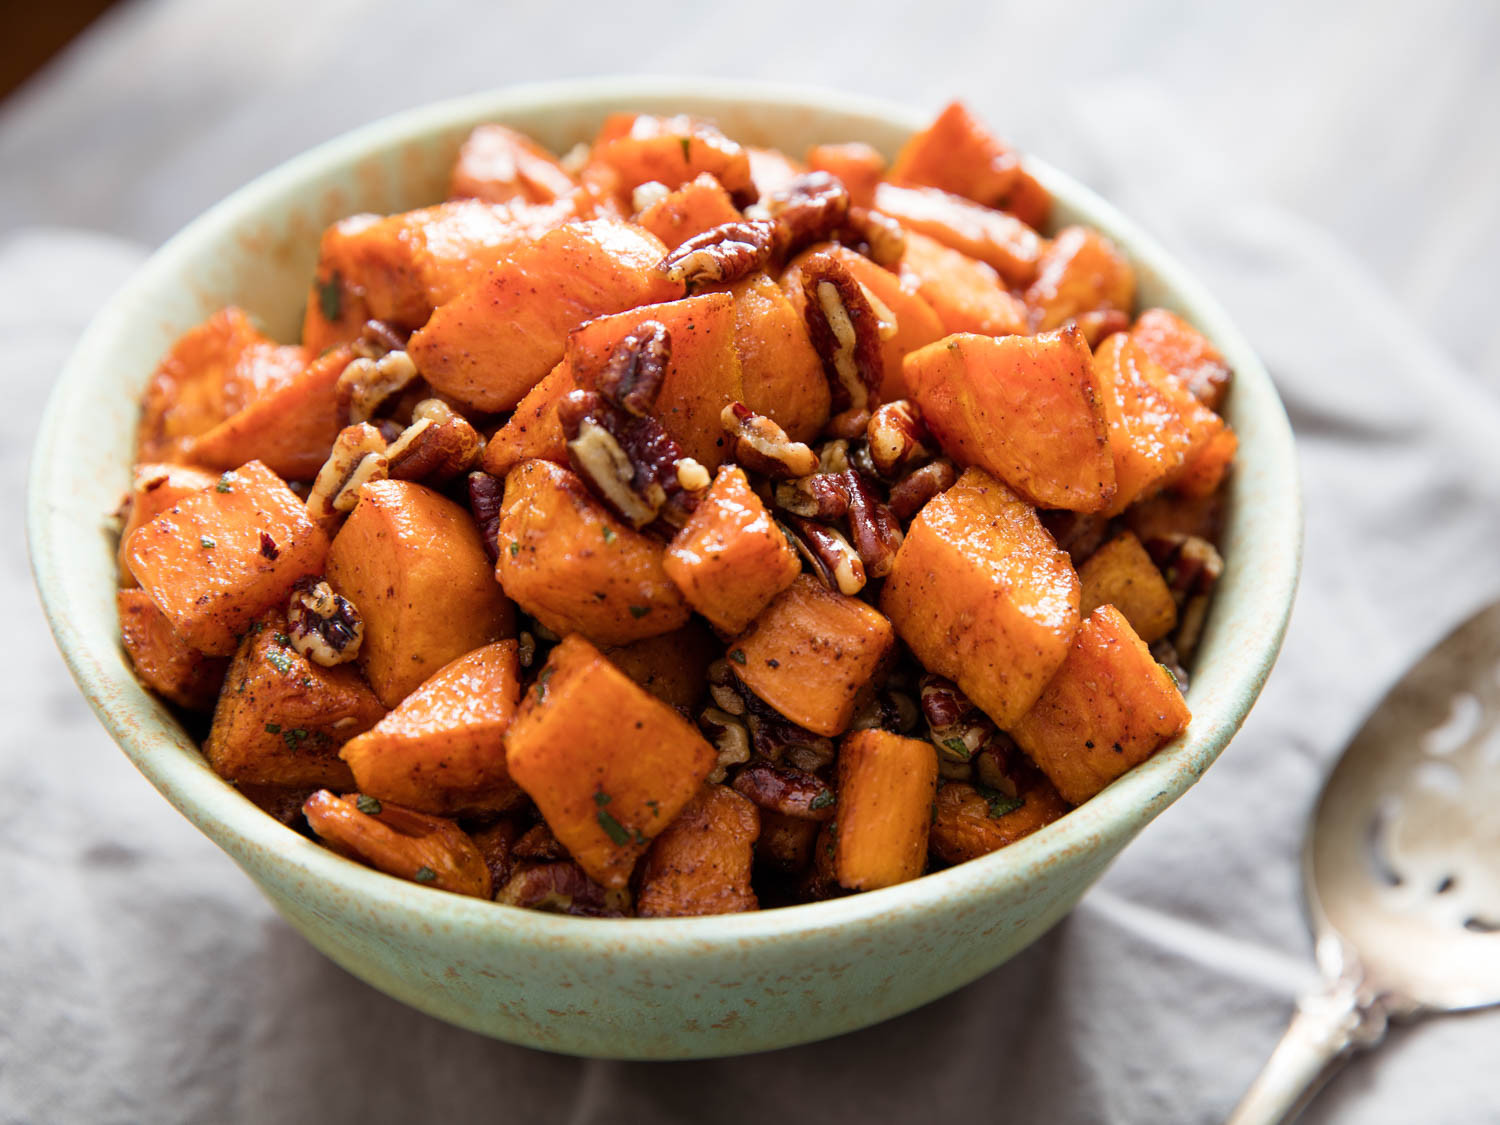 Thanksgiving Roasted Sweet Potatoes  14 Sweet Potato Recipes for Thanksgiving That Are Just